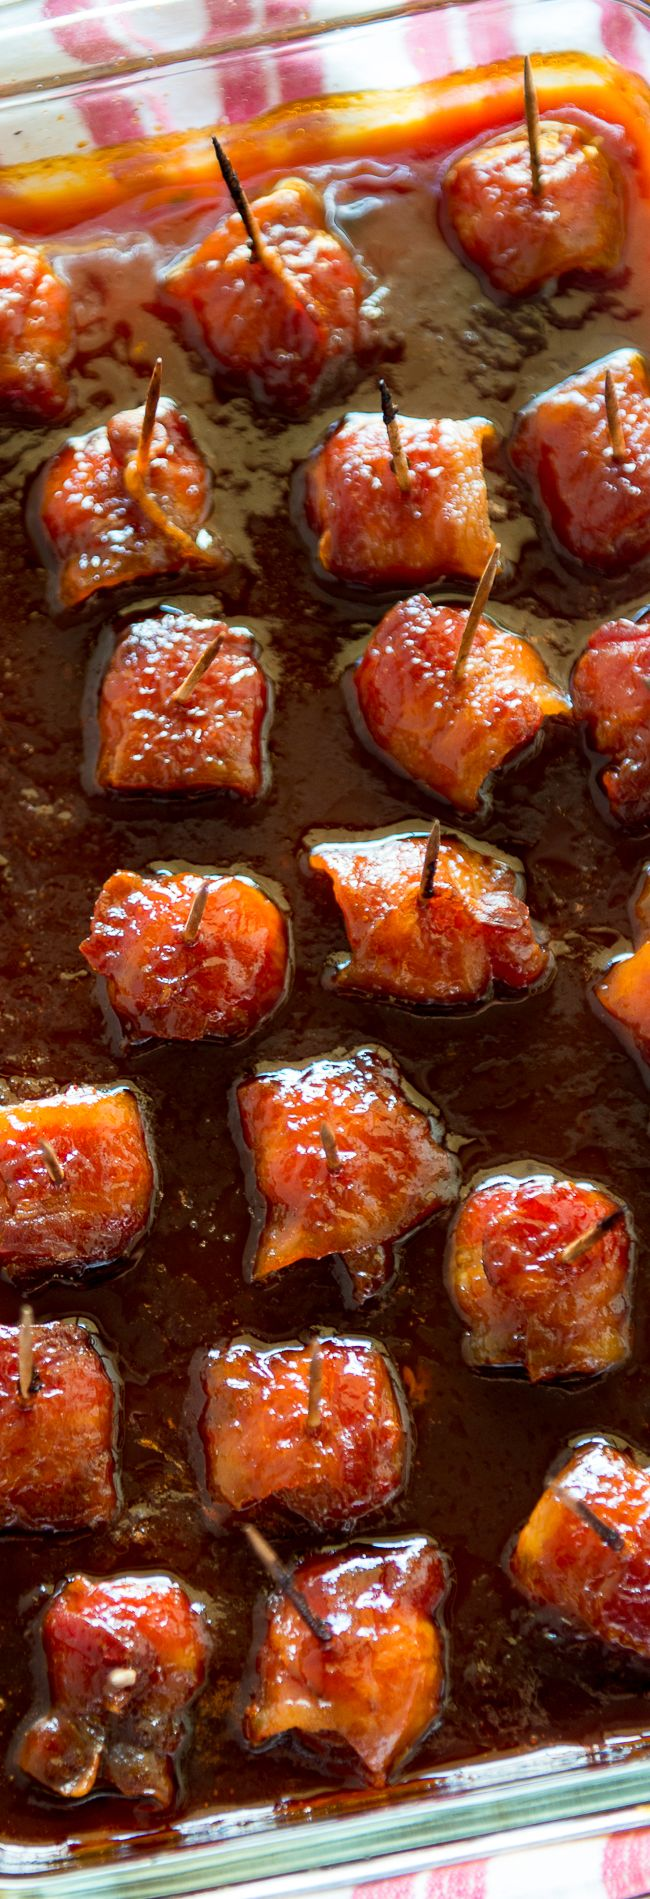 Bacon Wrapped Water Chestnuts - Just tried these for a holiday party. Such an easy and absolutely delicious appetizer recipe! You can't eat just one! These are made with ketchup, brown sugar and soy sauce. YUM.